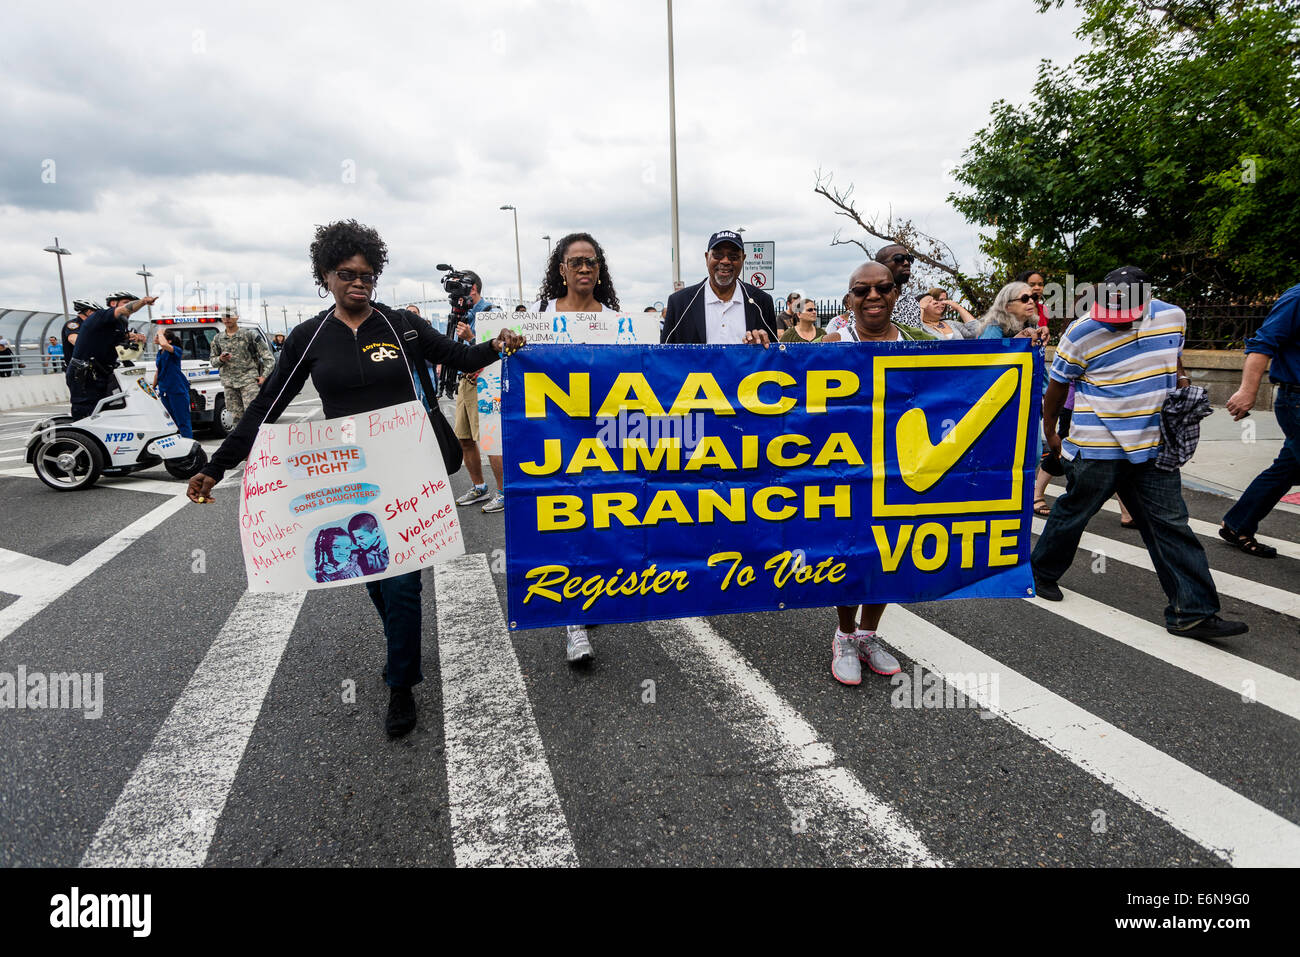 Staten Island, NY - 23 Aug 2014 - Members of the Jamaica NAACP depart the St George ferry terminal to join the march - Stock Image